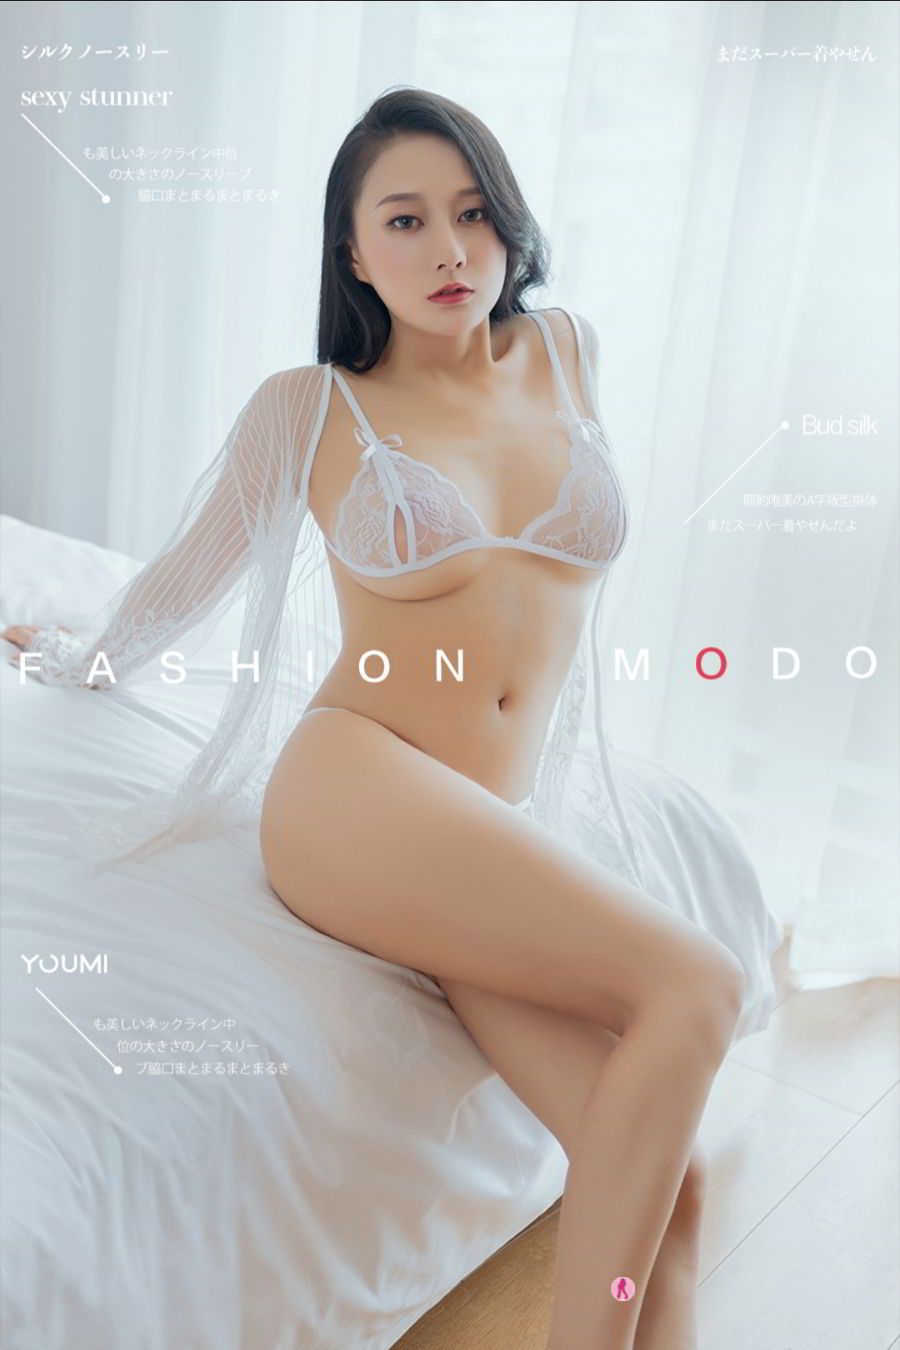 [Youmei] Vol.197 The beauty of lace